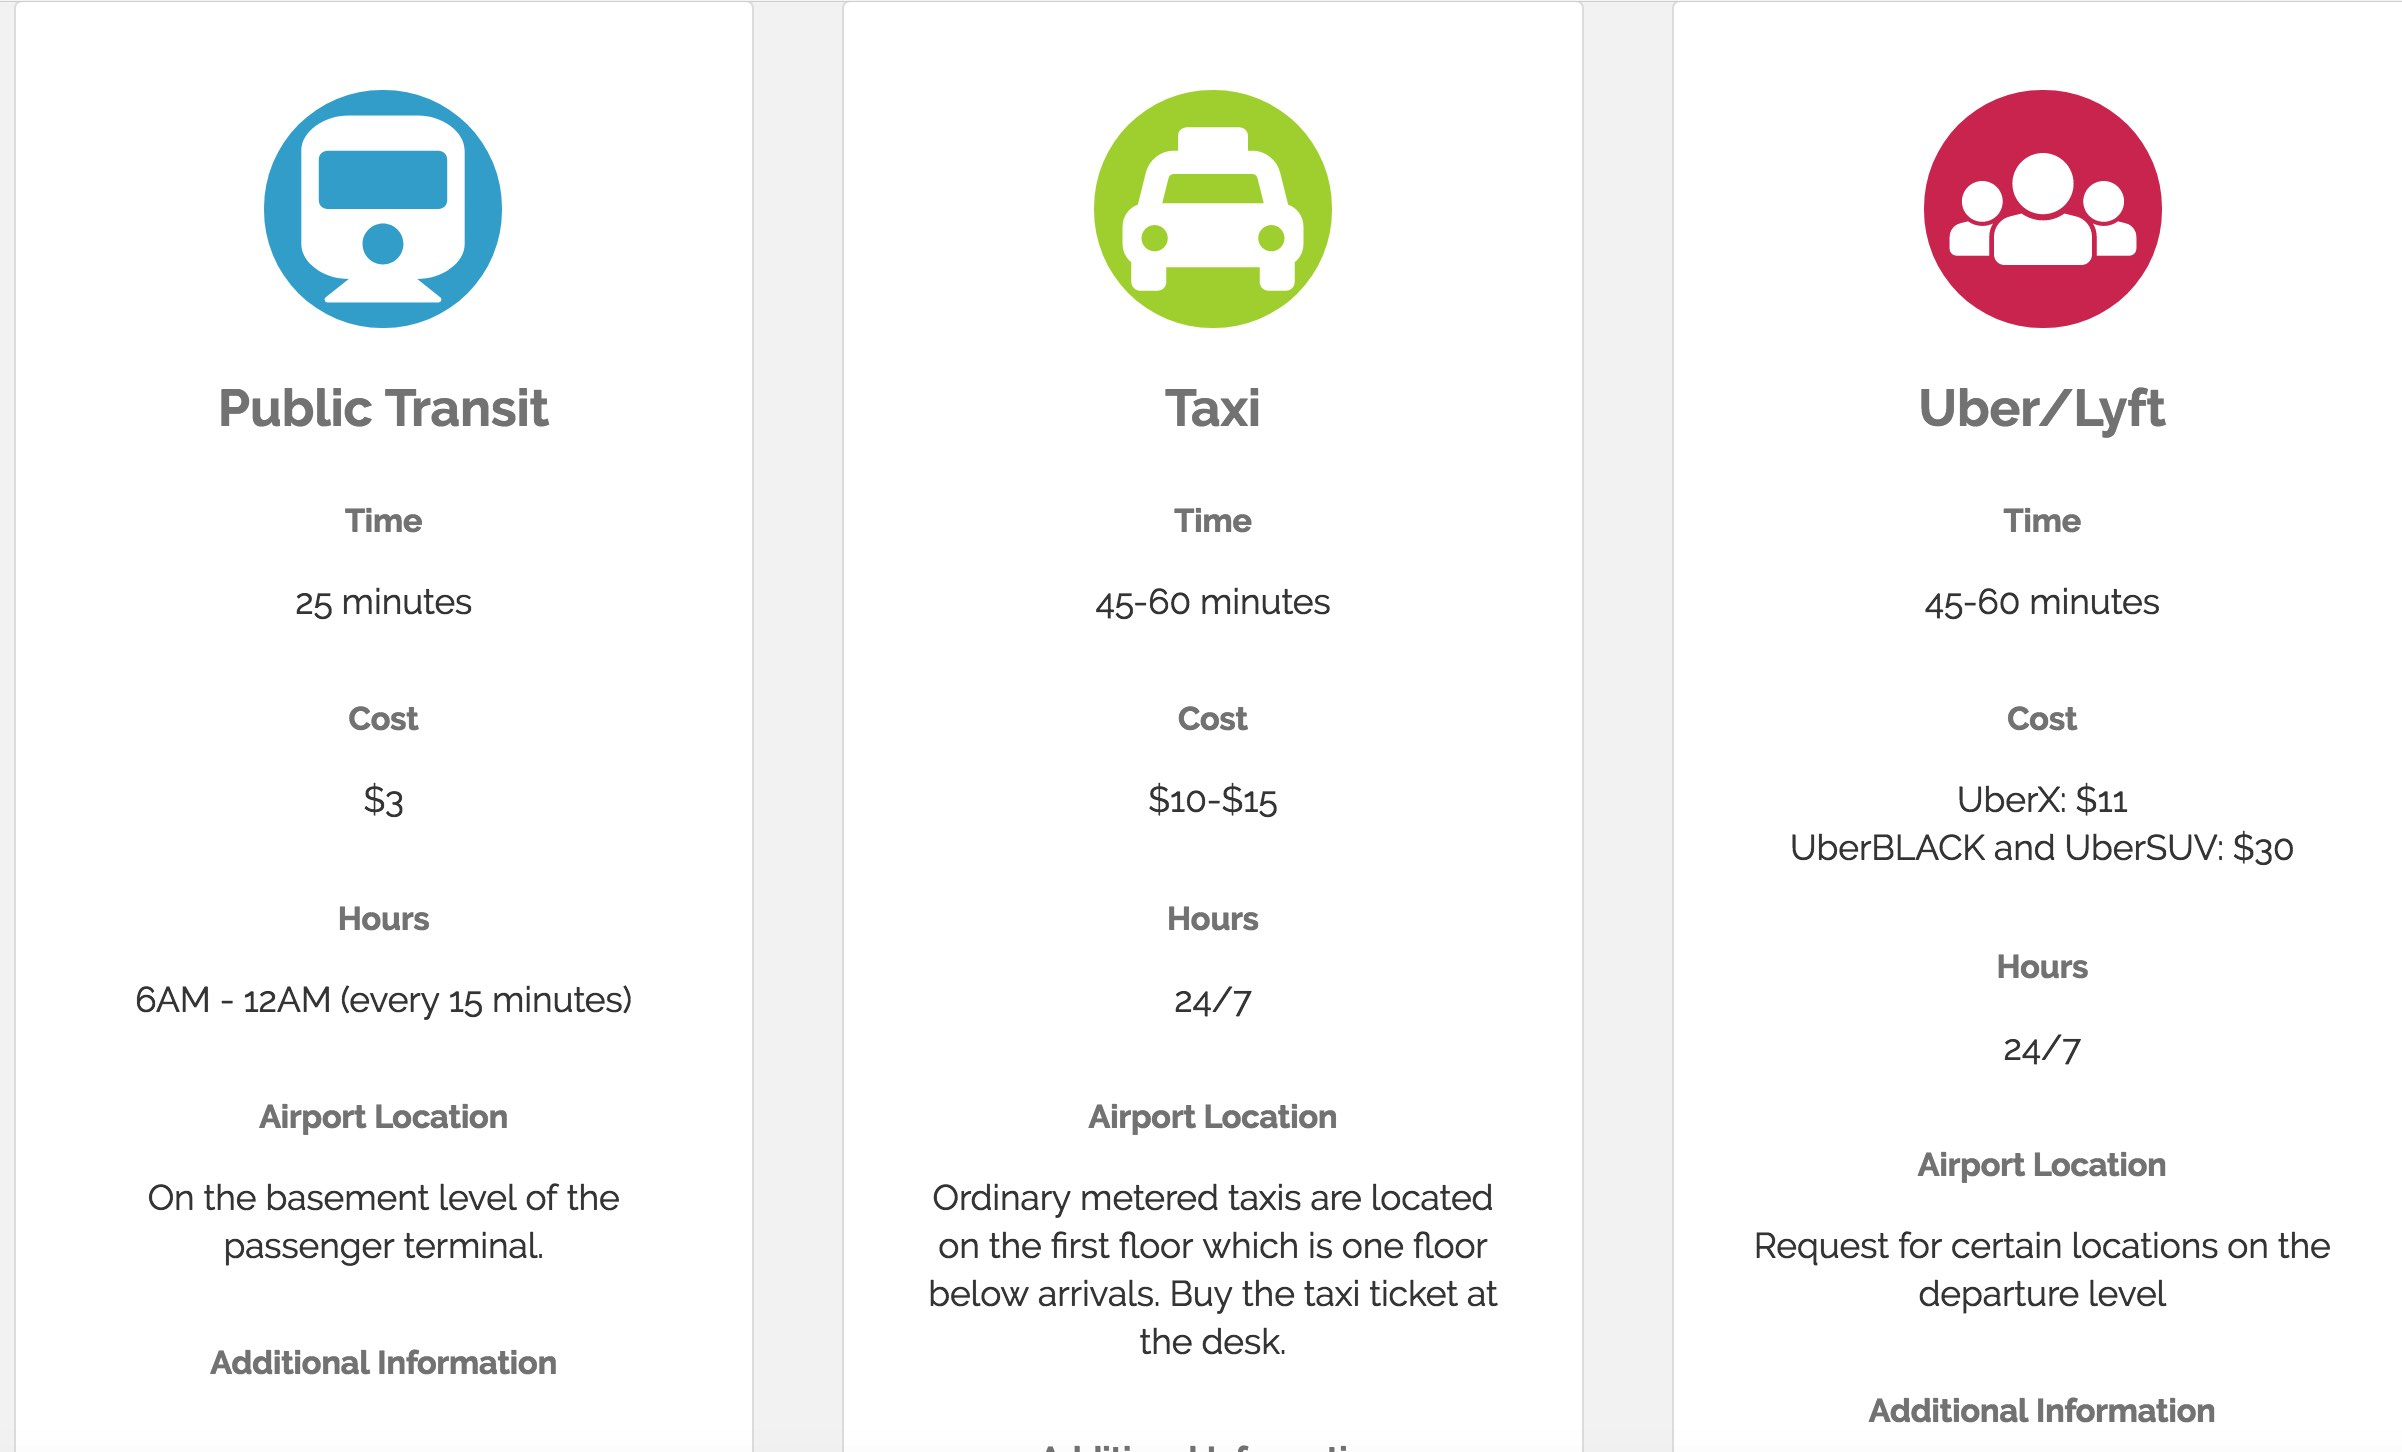 Bangkok Transportation Comparison Guide